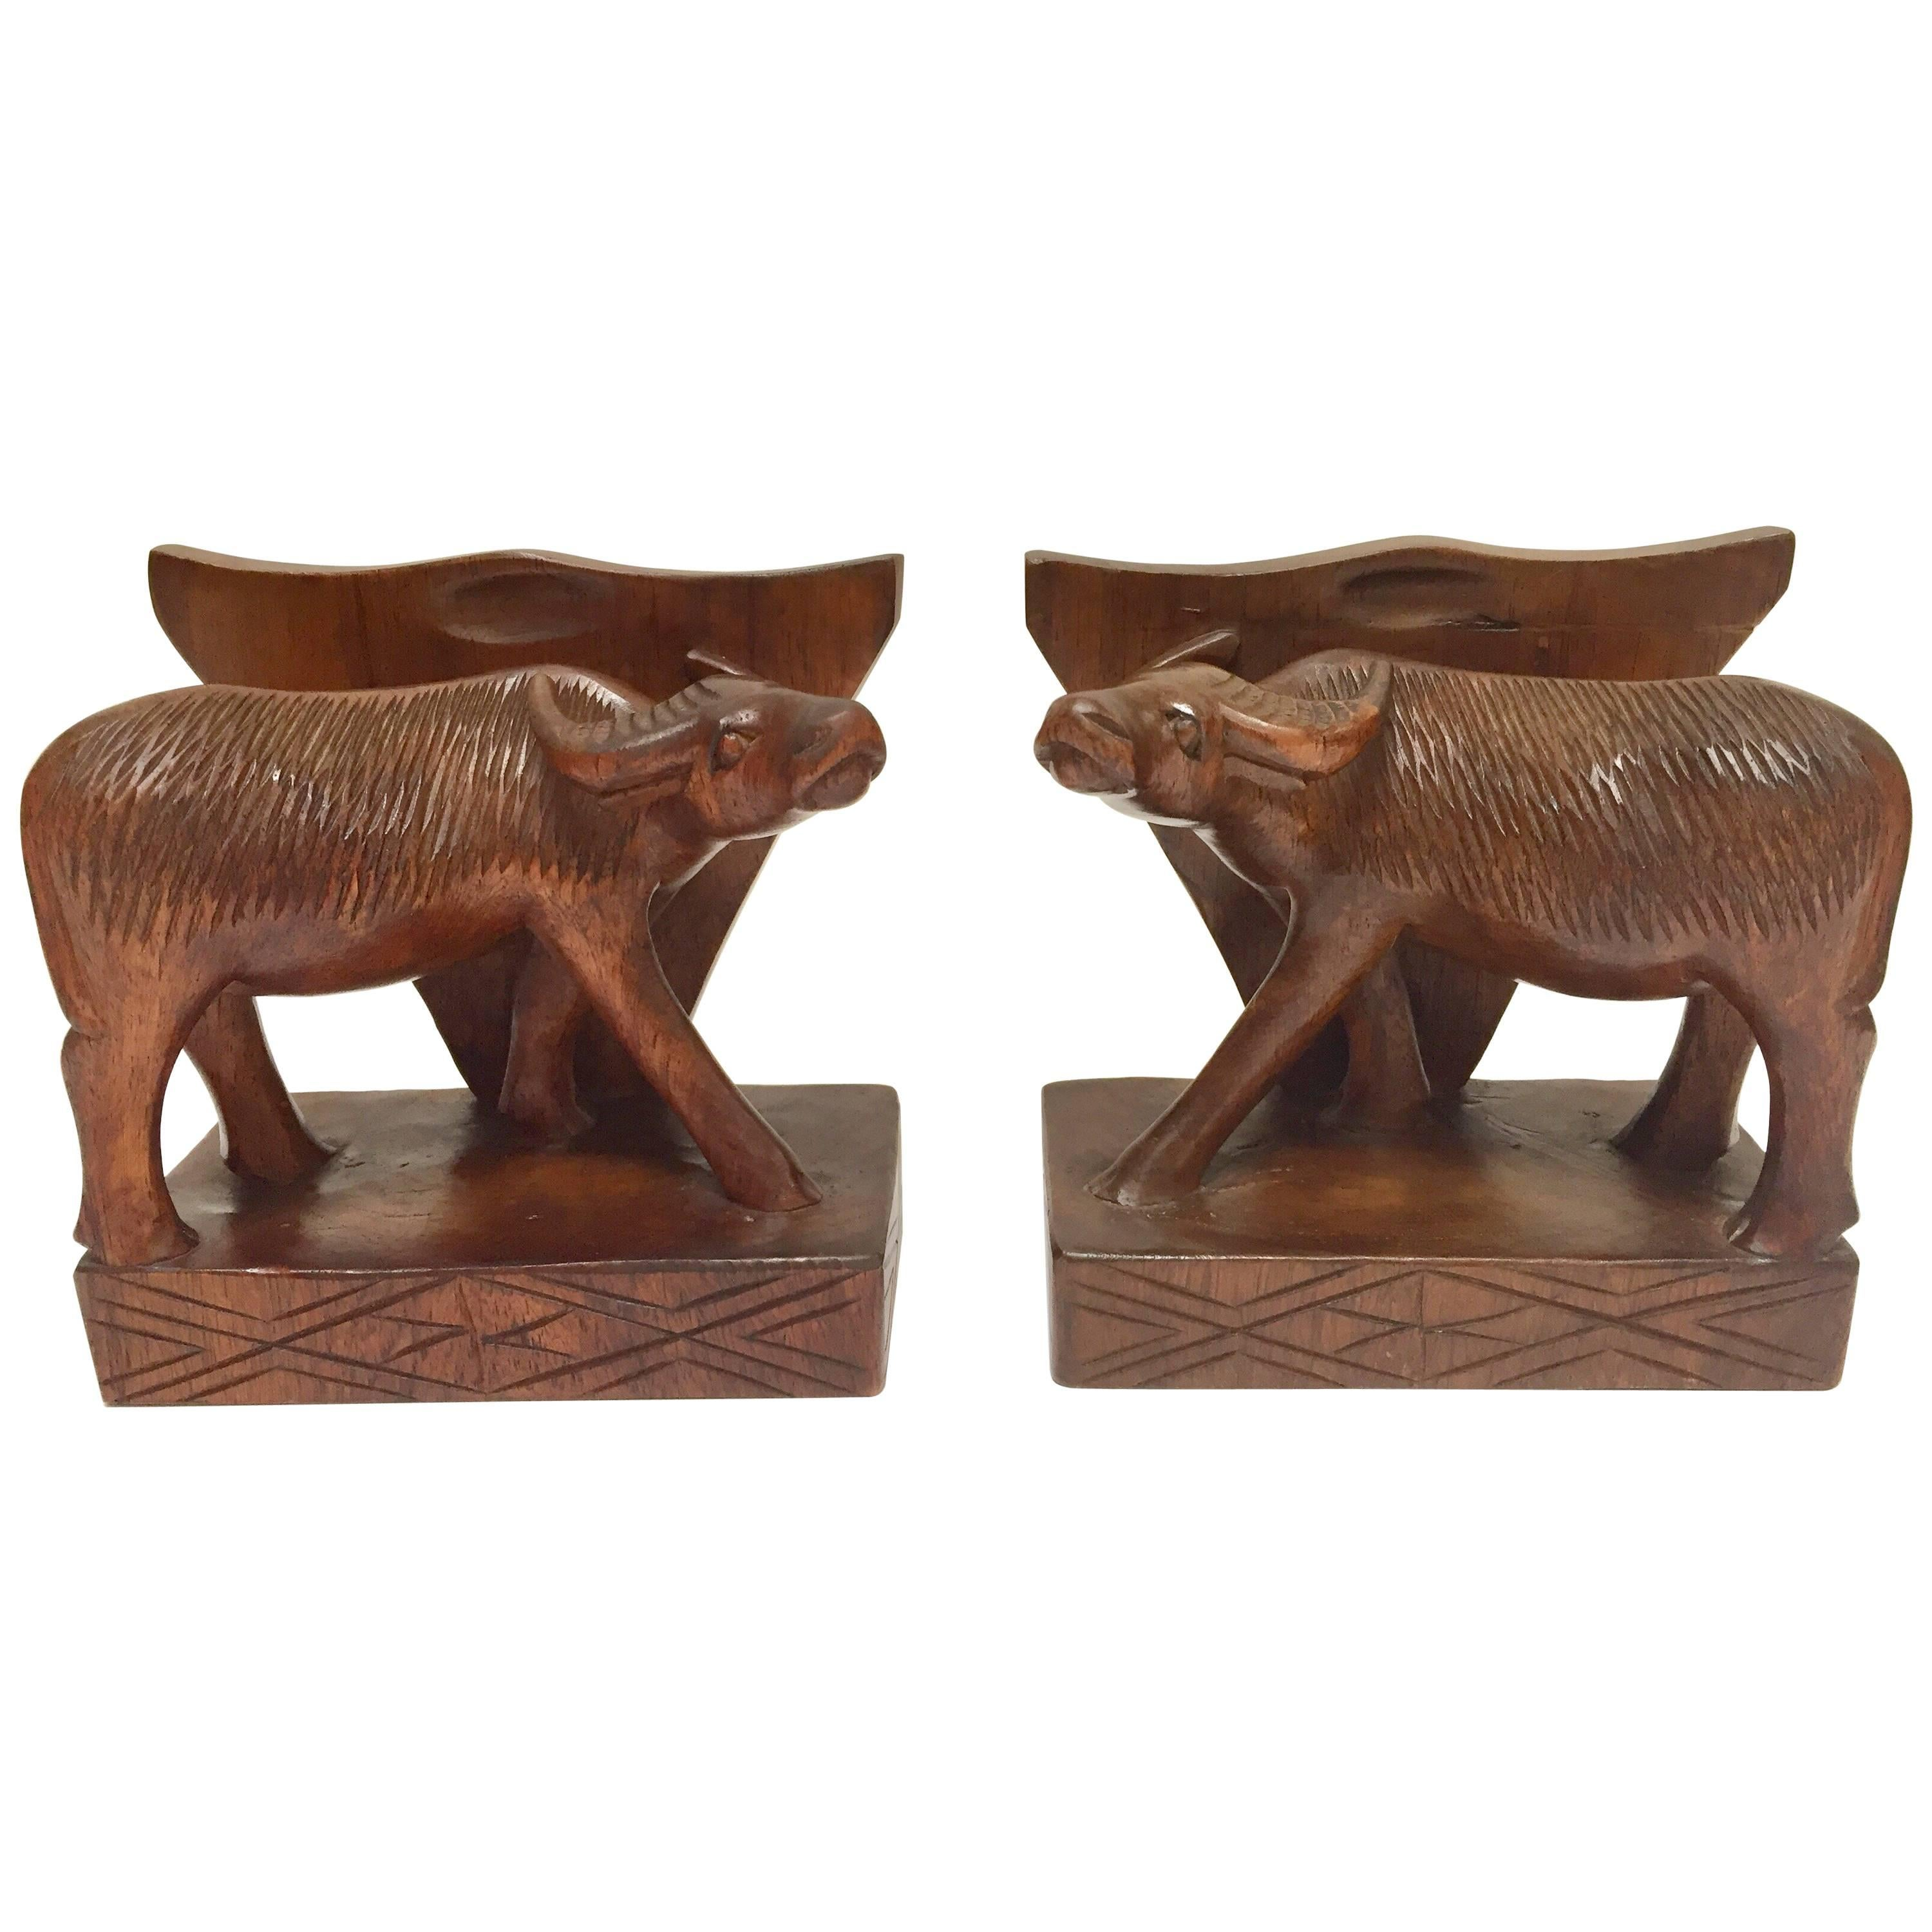 Hand-Carved Wooden Sculpture of African Buffalo Bookends